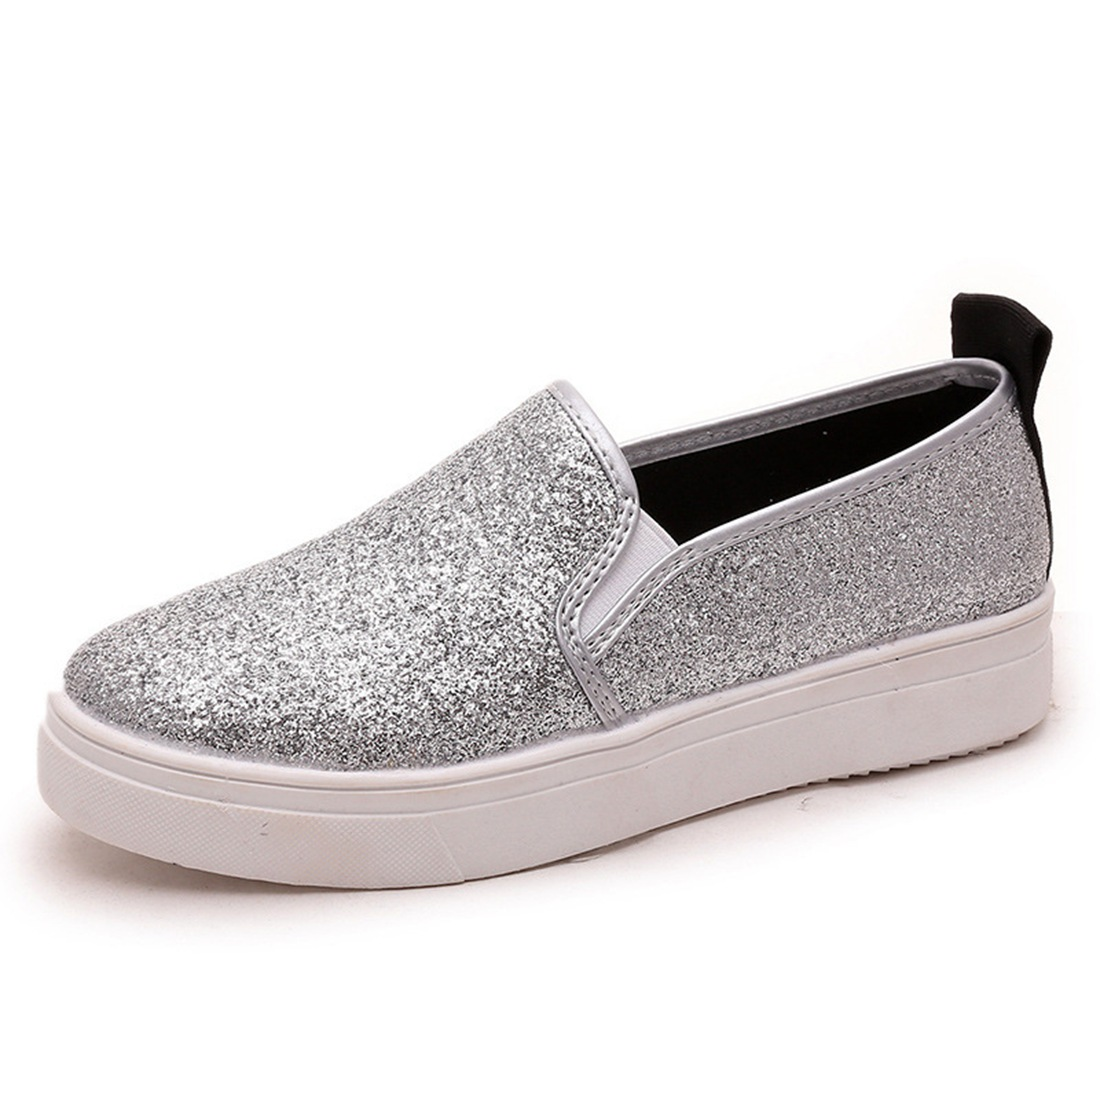 2017 shoes Women platform Loafers Silver Sequined Cloth Slip on Flat Shoes Spring Autumn Woman Creepers Glitter zapatos mujer phyanic 2017 gladiator sandals gold silver shoes woman summer platform wedges glitters creepers casual women shoes phy3323